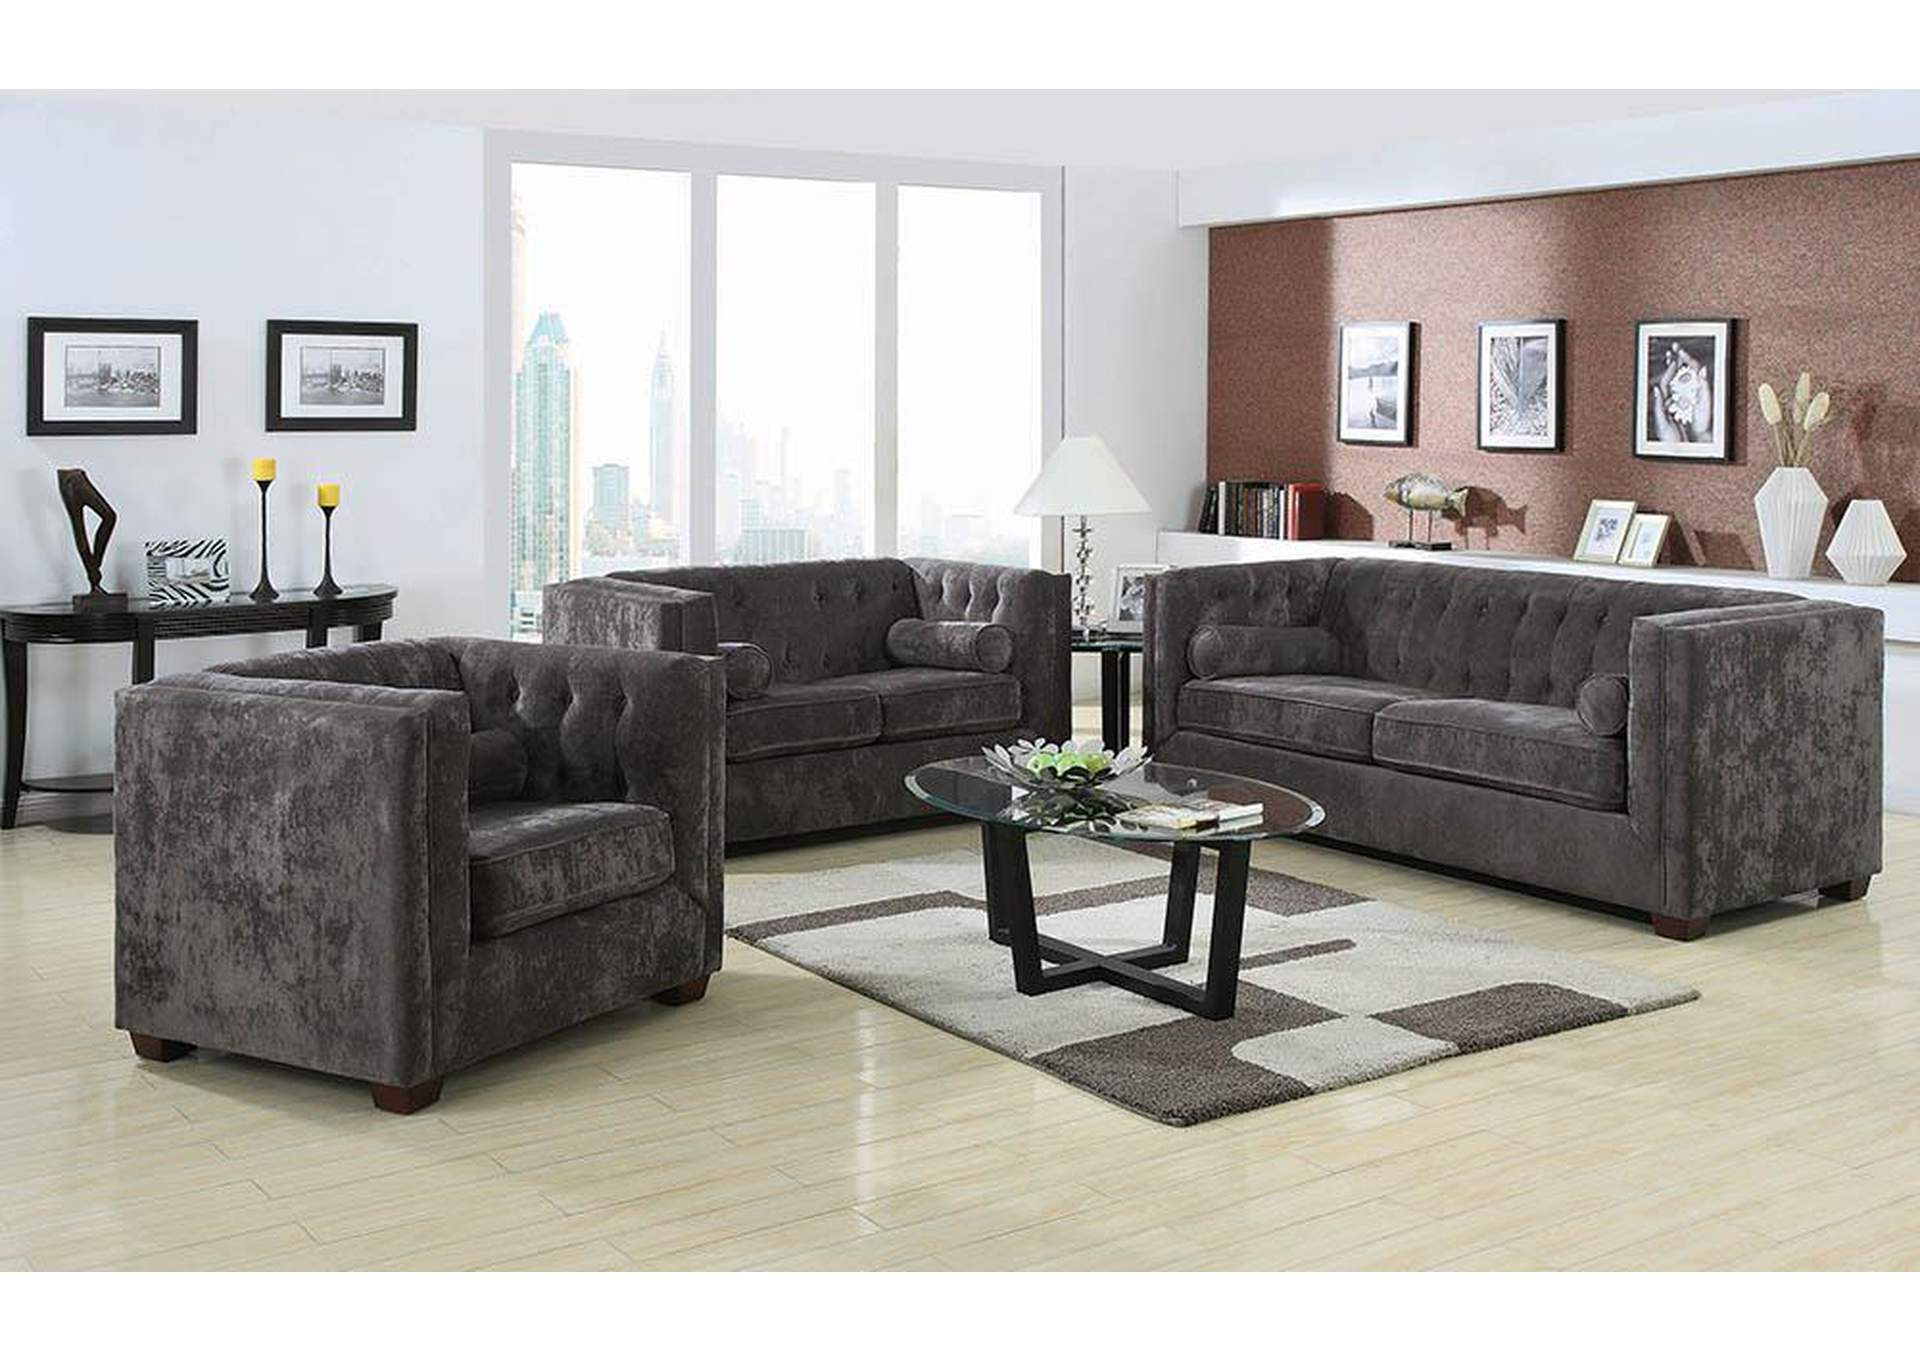 Alexis Charcoal Sofa,Coaster Furniture